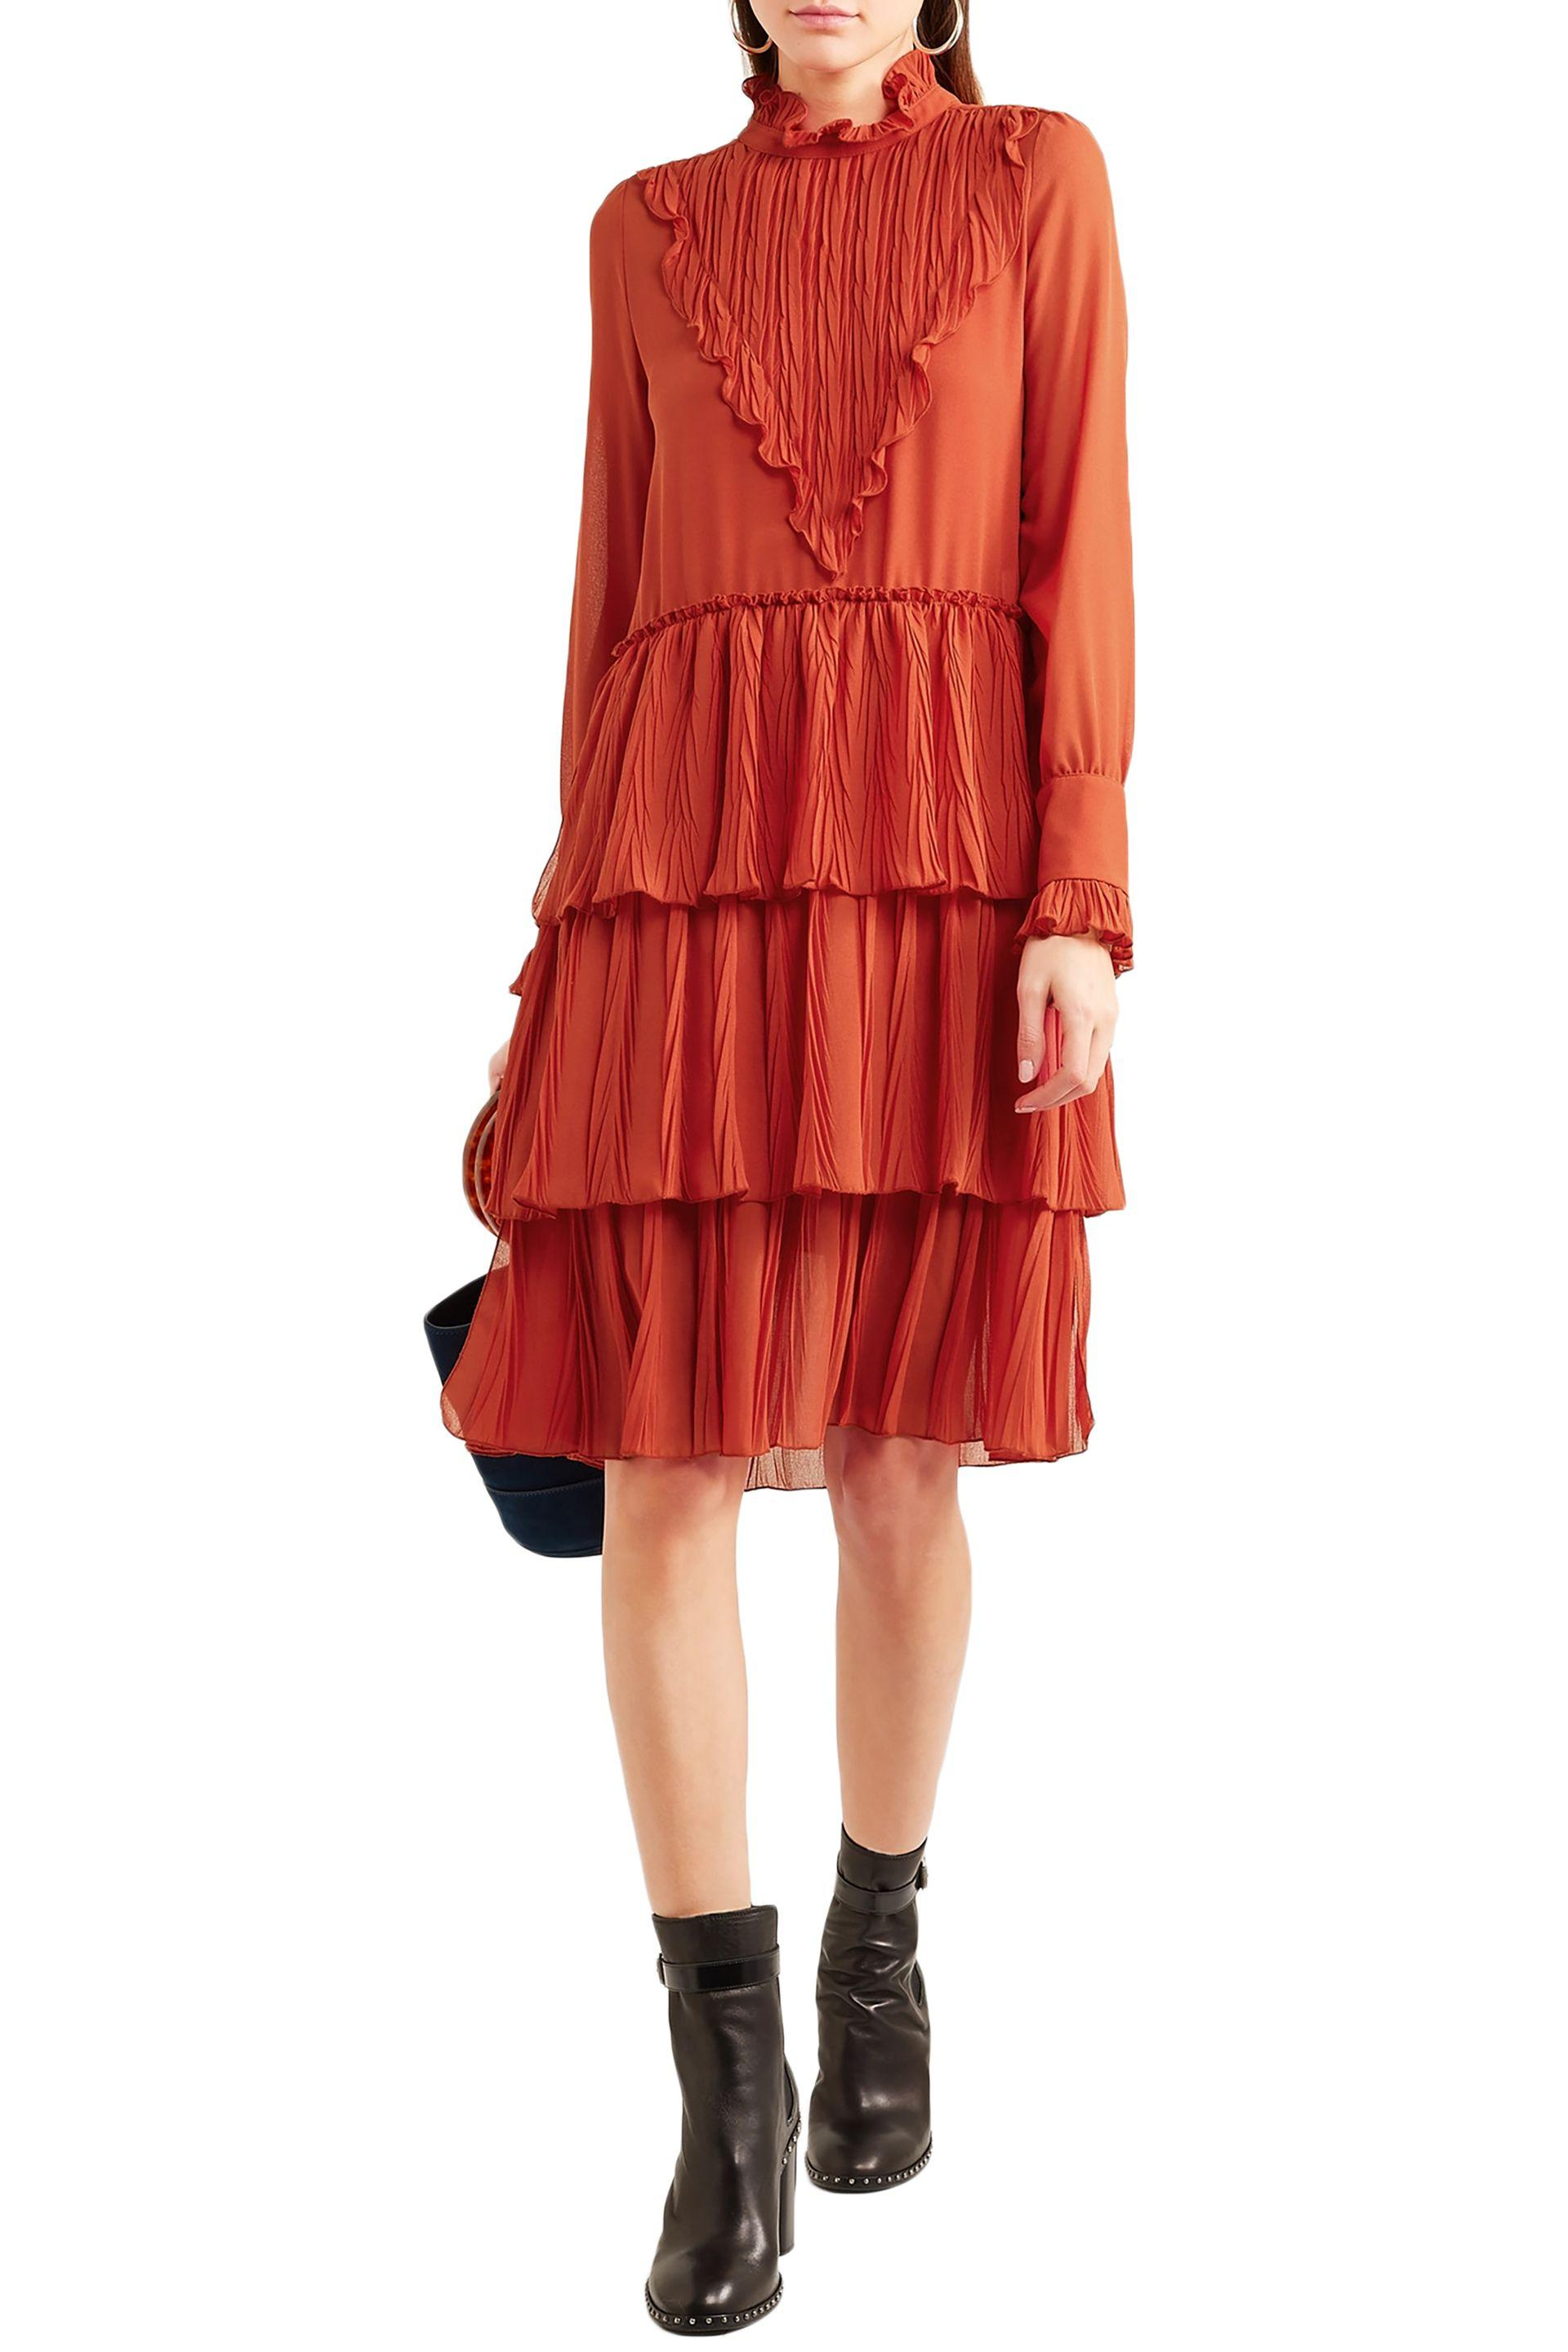 006fc8985f Lyst - See By Chloé See By Chloé Woman Tiered Ruffled Chiffon Dress ...